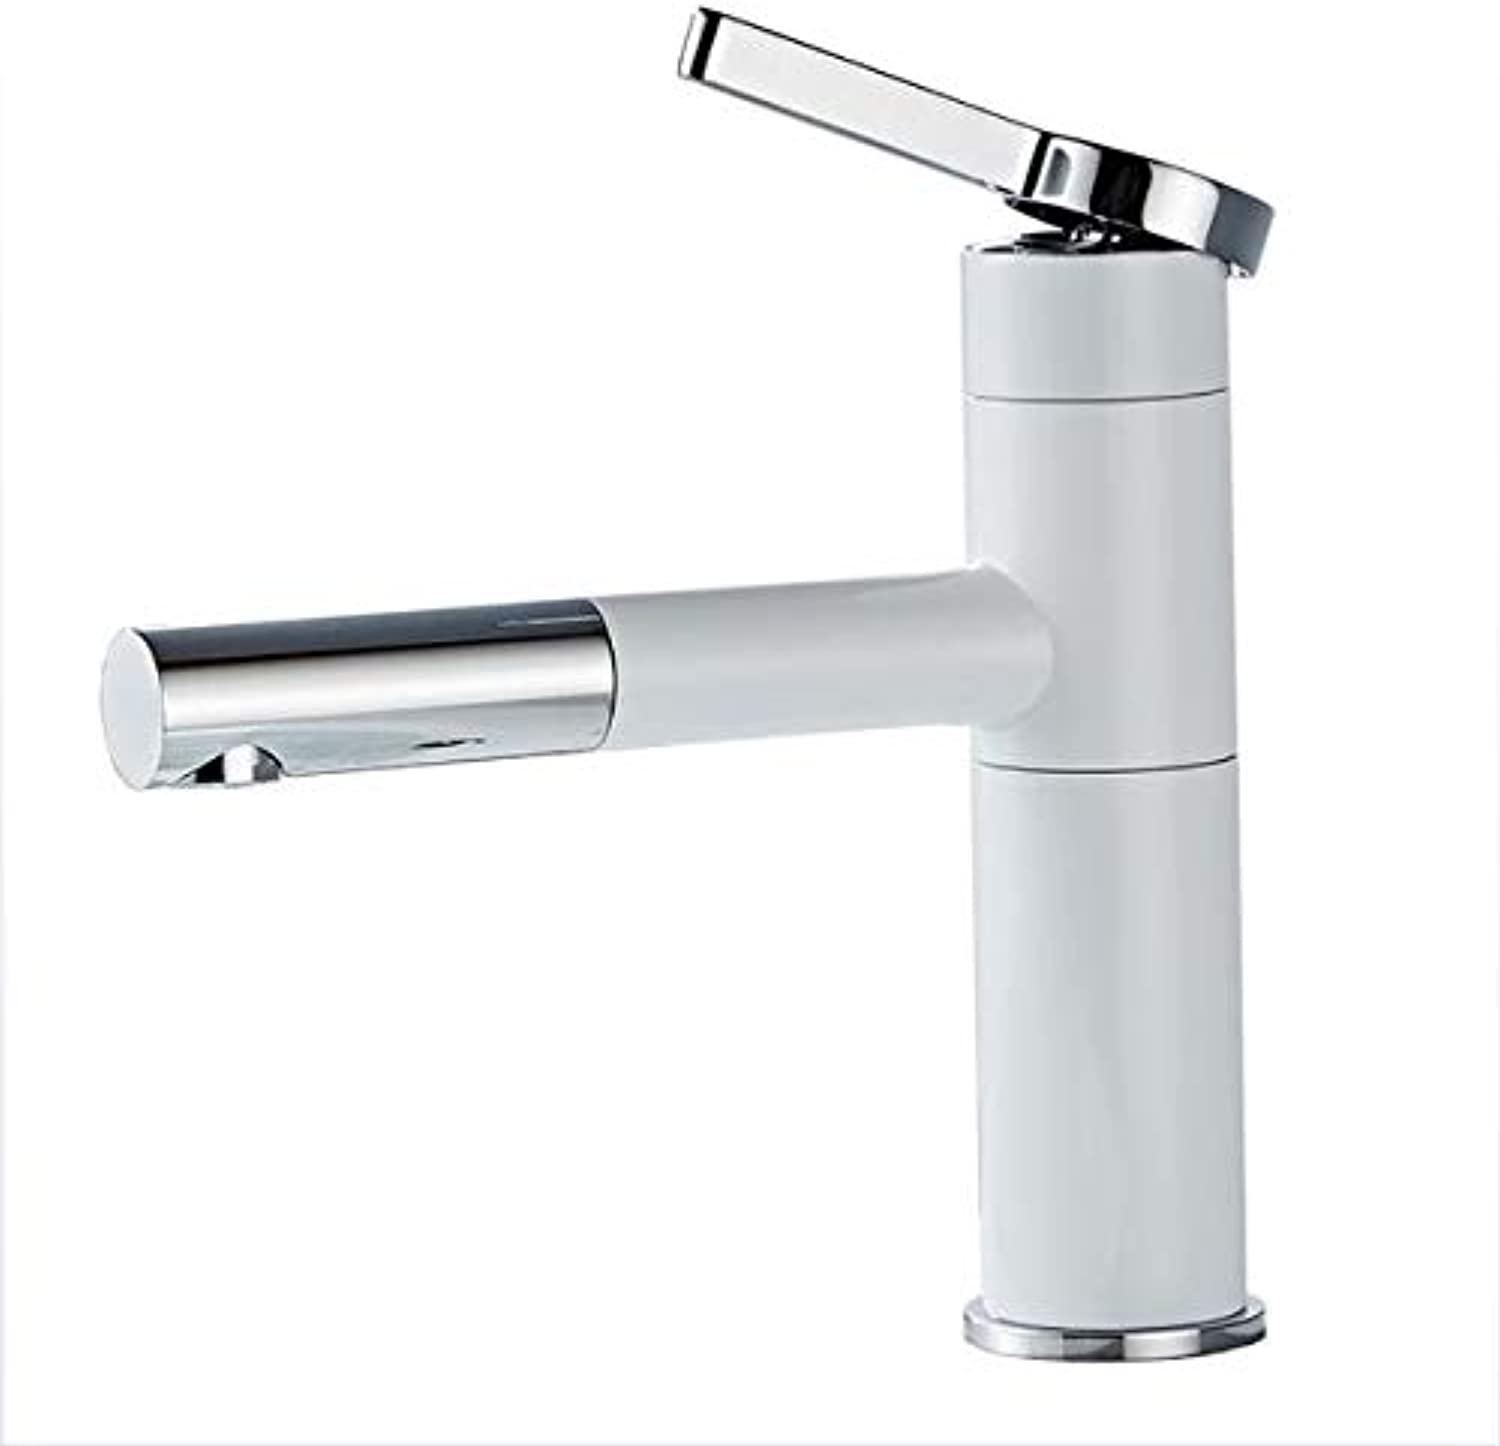 GAOXP Basin Faucet, Pull-Out redating Sink Faucet, Extended Spout Faucet Hot and Cold Mixing Faucet, Sleek Minimalist